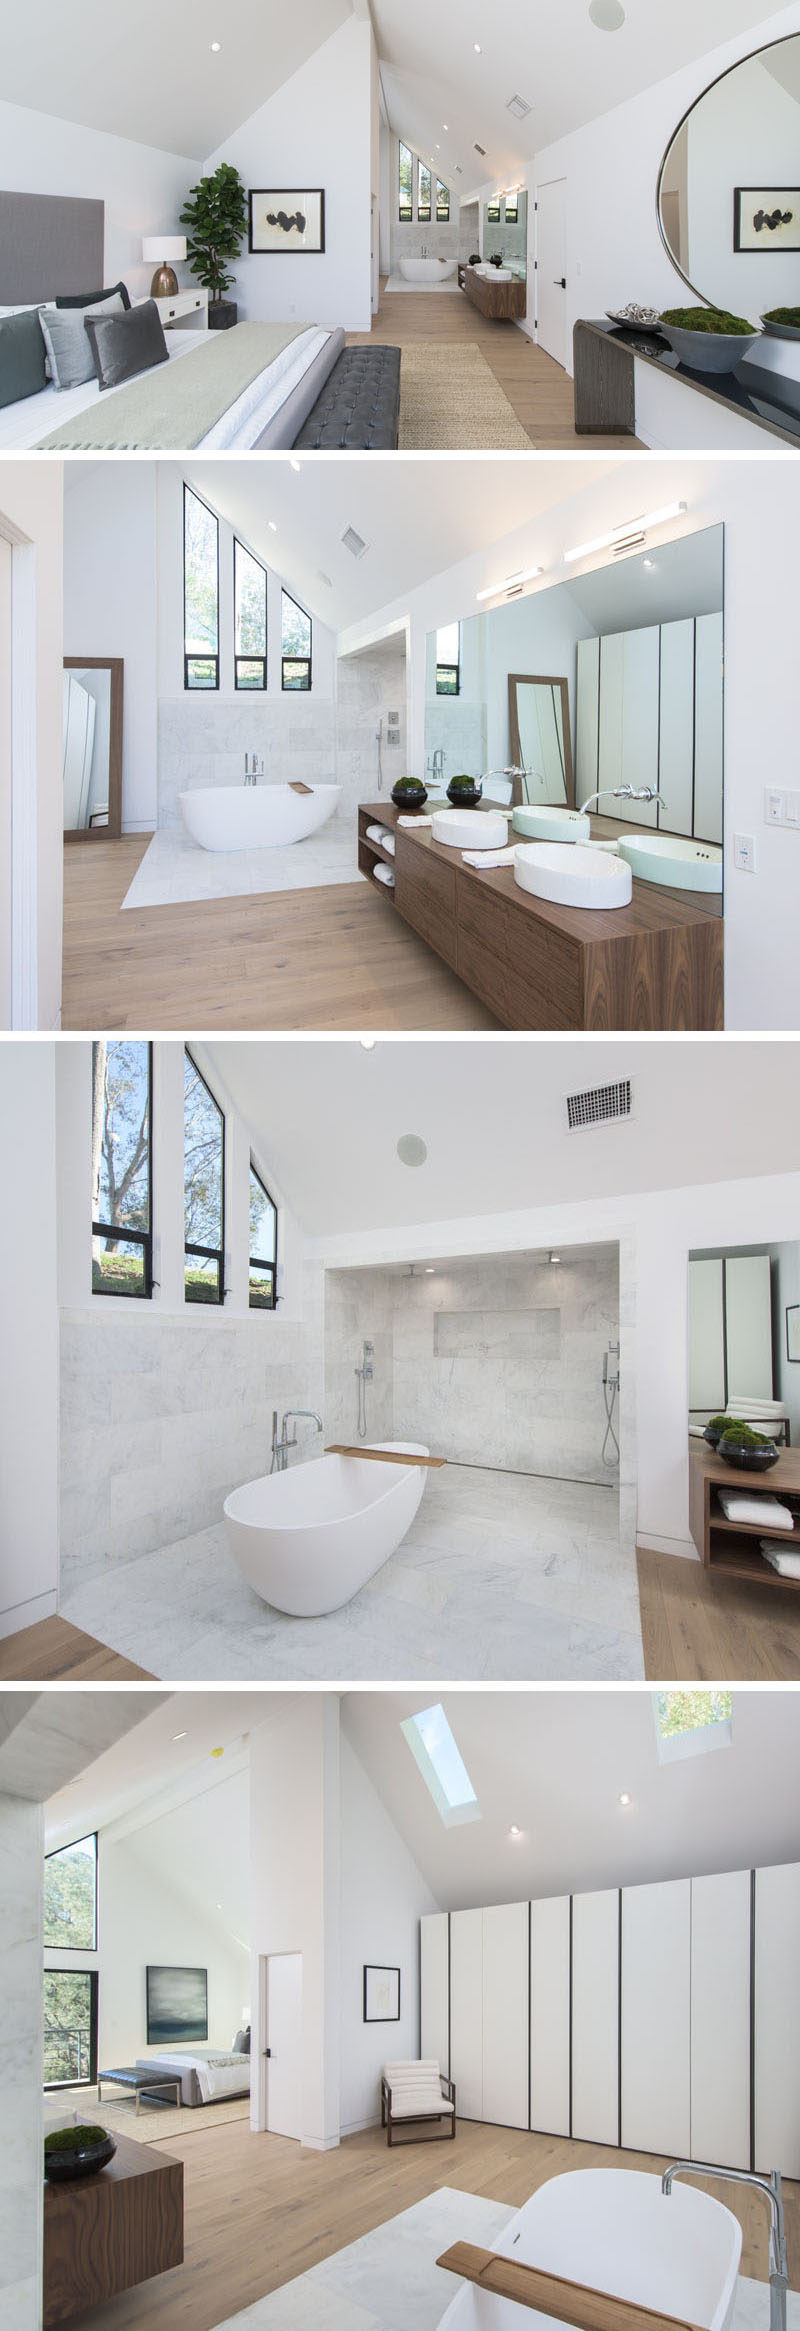 This modern master bedroom has a vaulted ceiling with an open bathroom. A white freestanding bathtub sits next to the dual shower, which is surrounded by tile. On the opposite wall to the shower is a wall of closets. #MasterBedroom #BedroomSuite #Bedroom #Bathroom